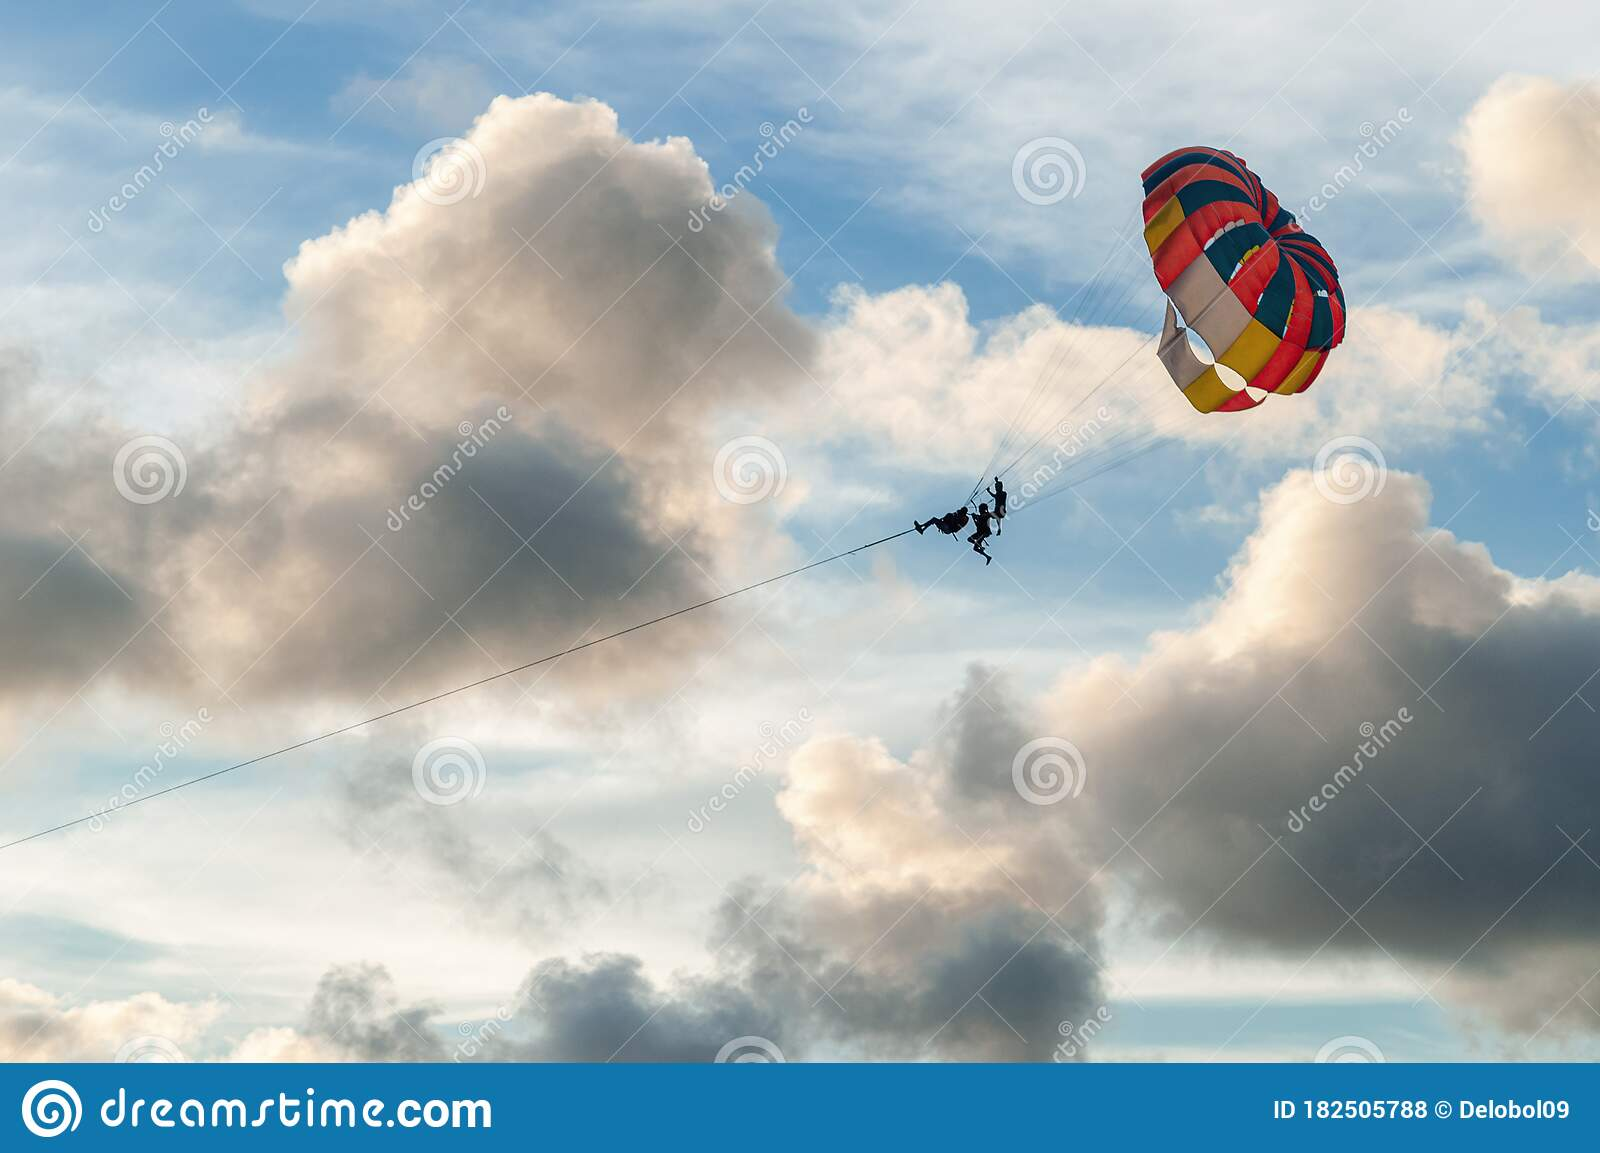 Parasailing Stock Photos, Pictures & Royalty-Free Images